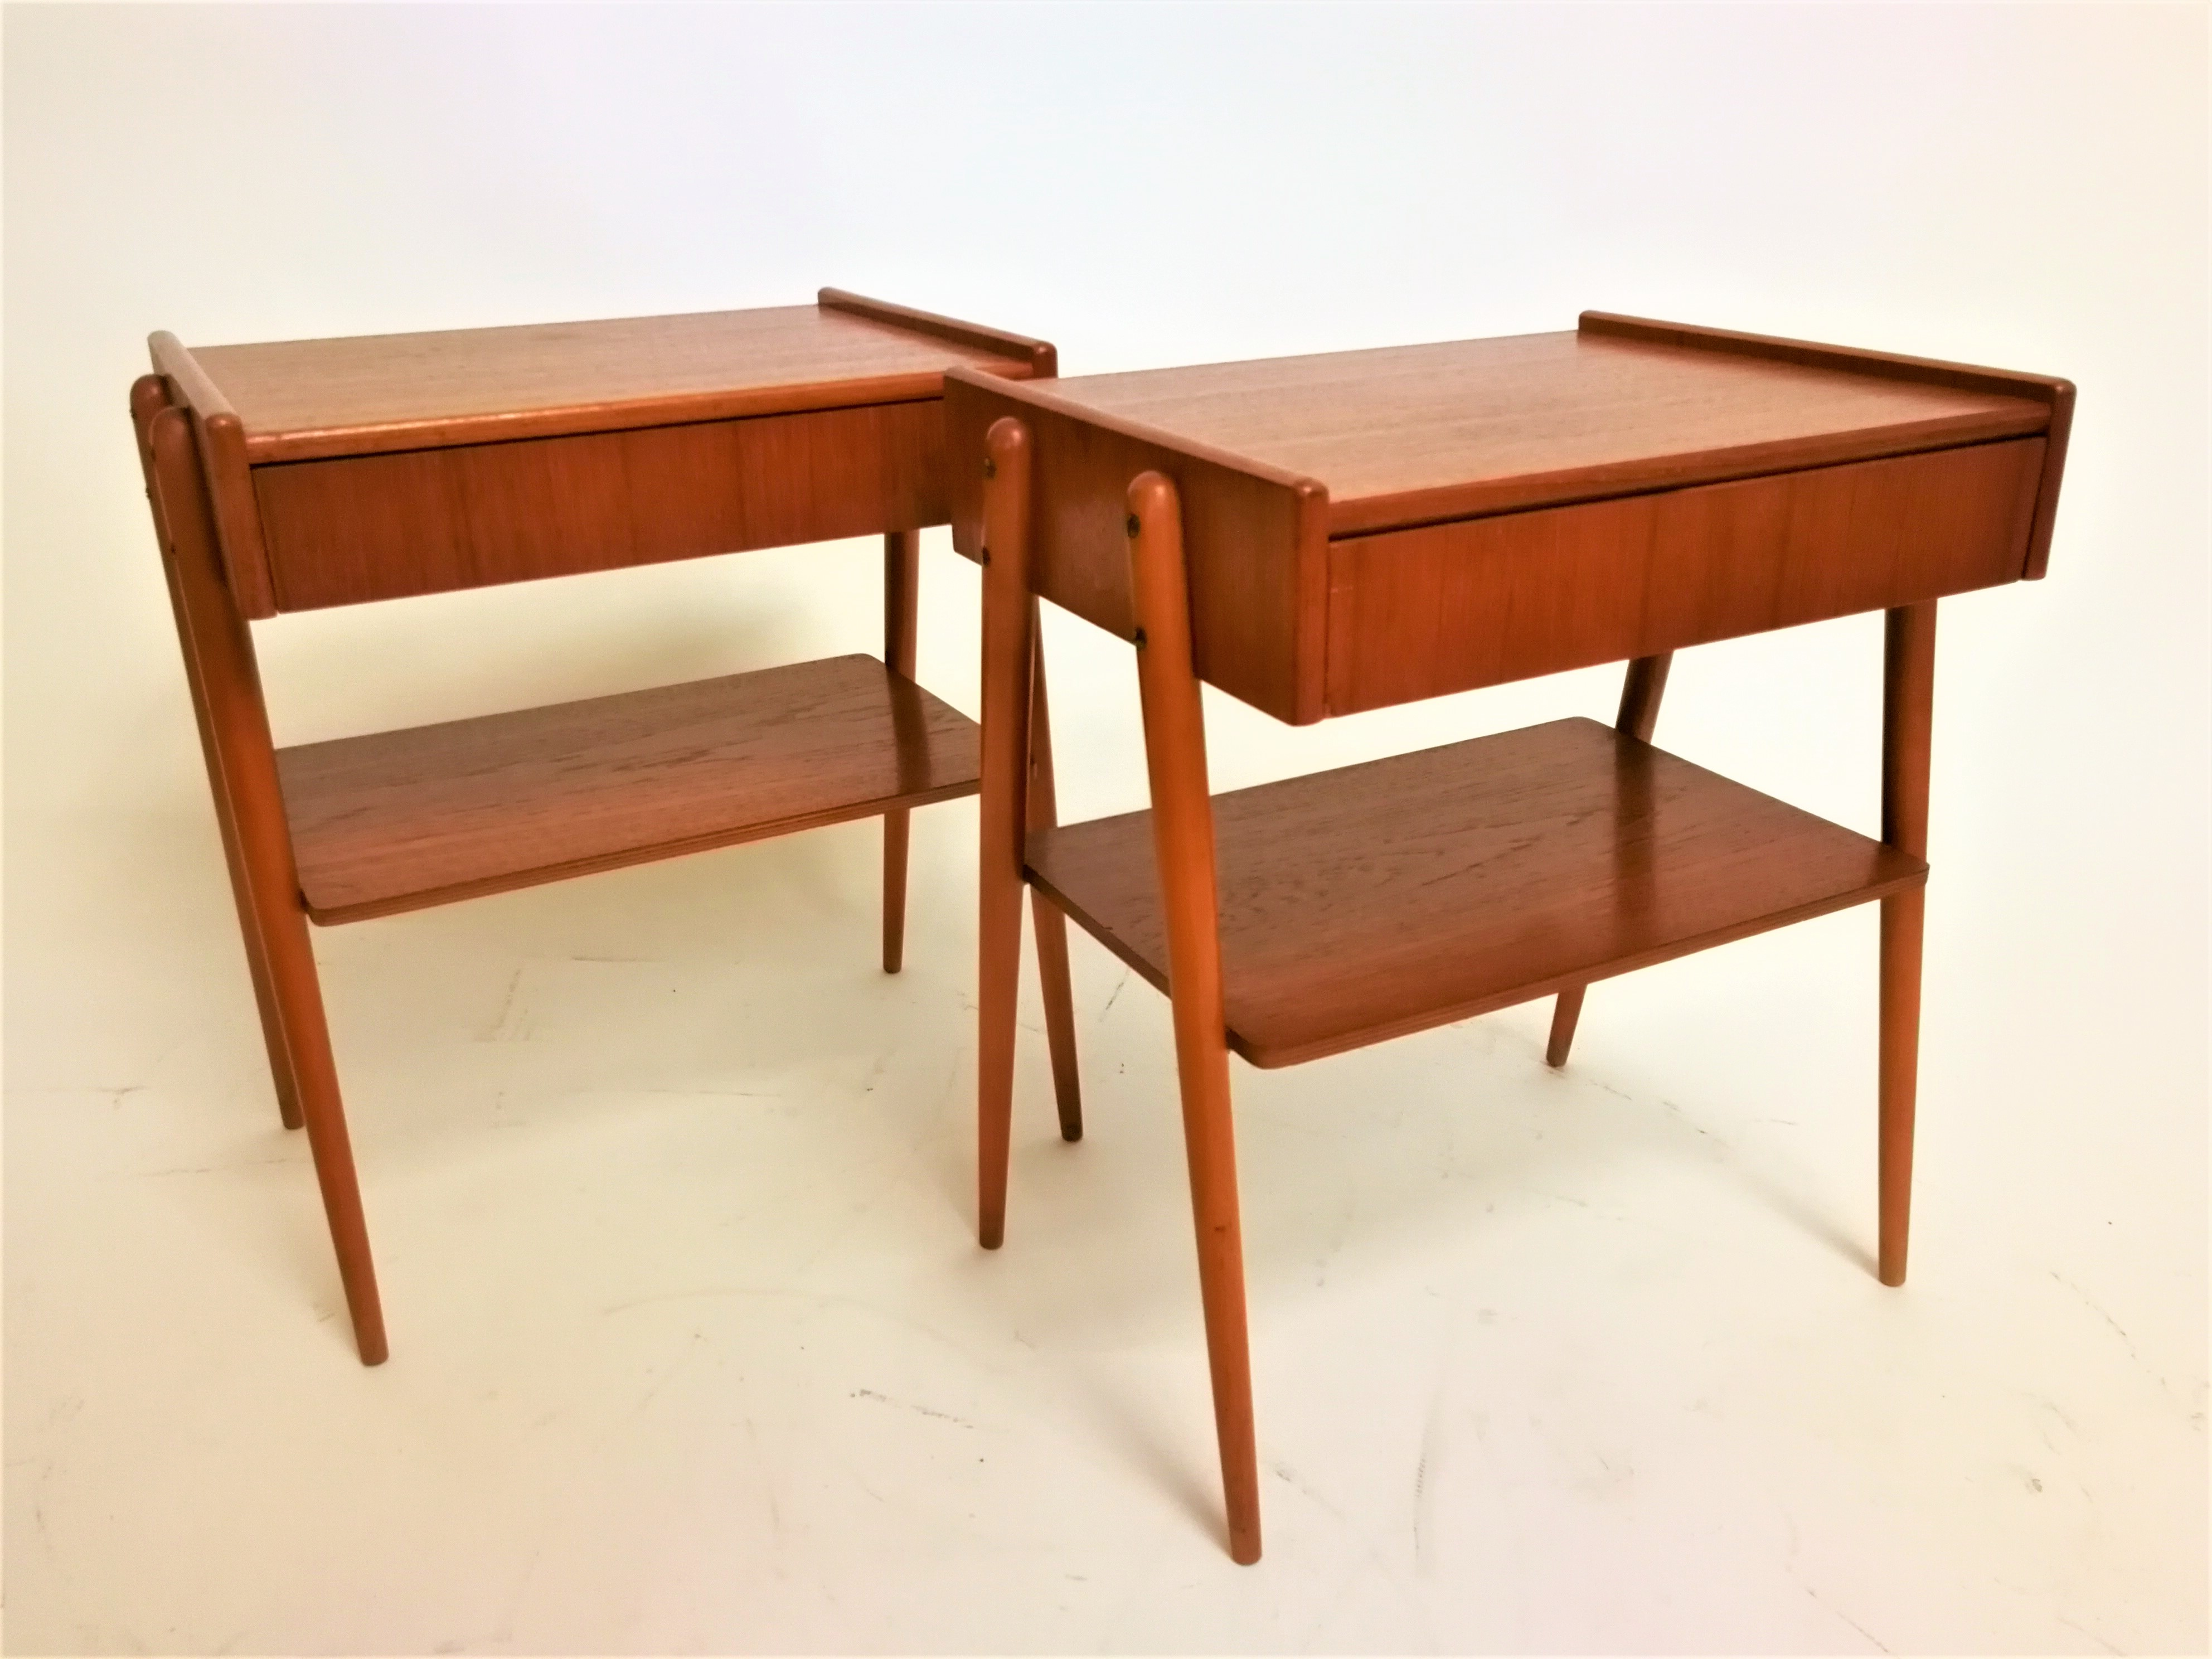 Pair of Danish bedside tables